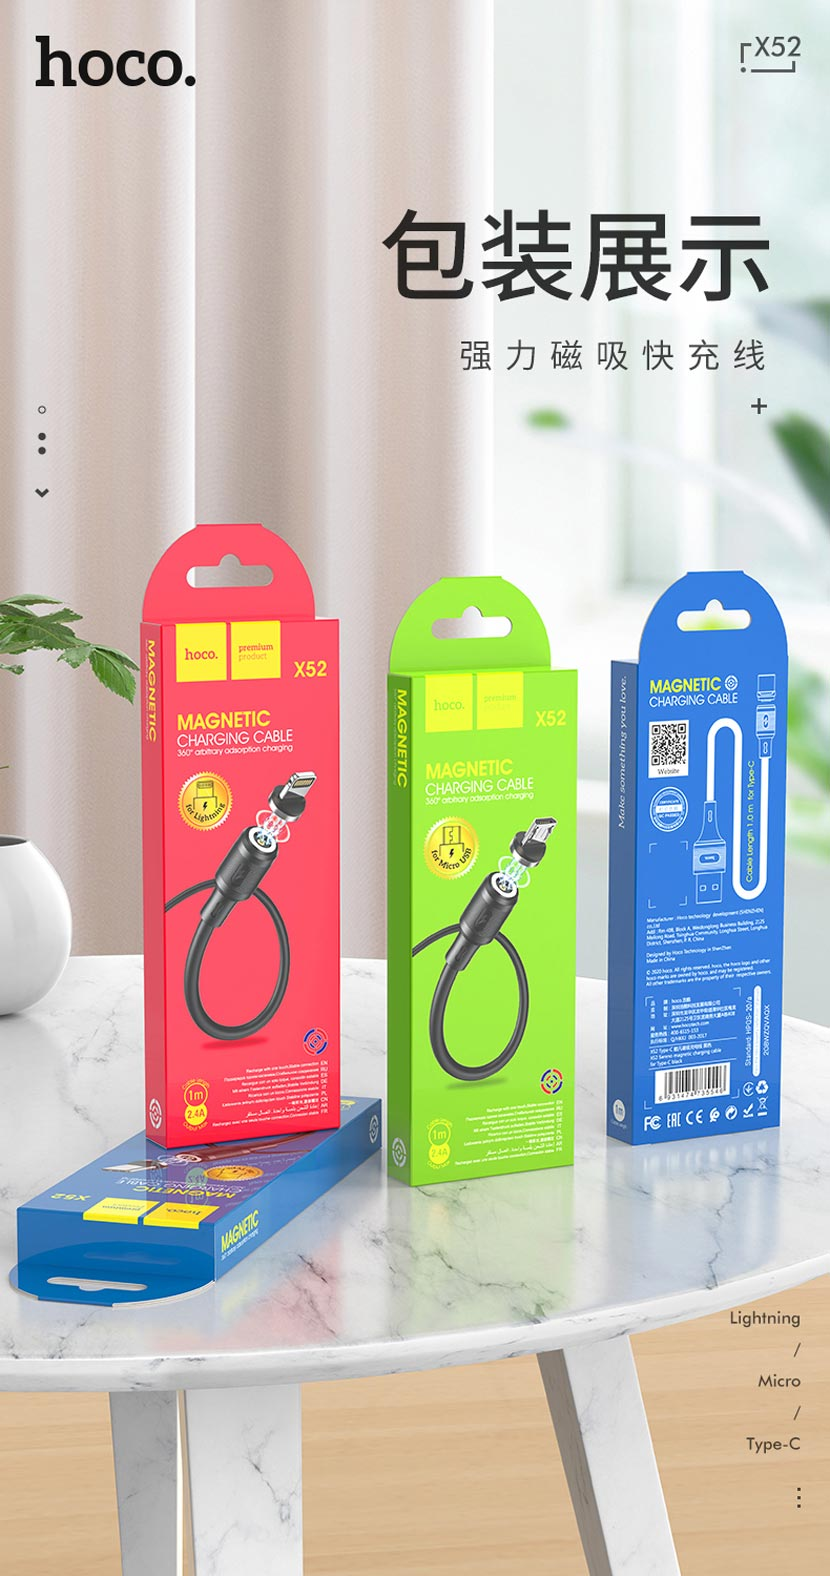 hoco news x52 sereno magnetic charging cable package cn